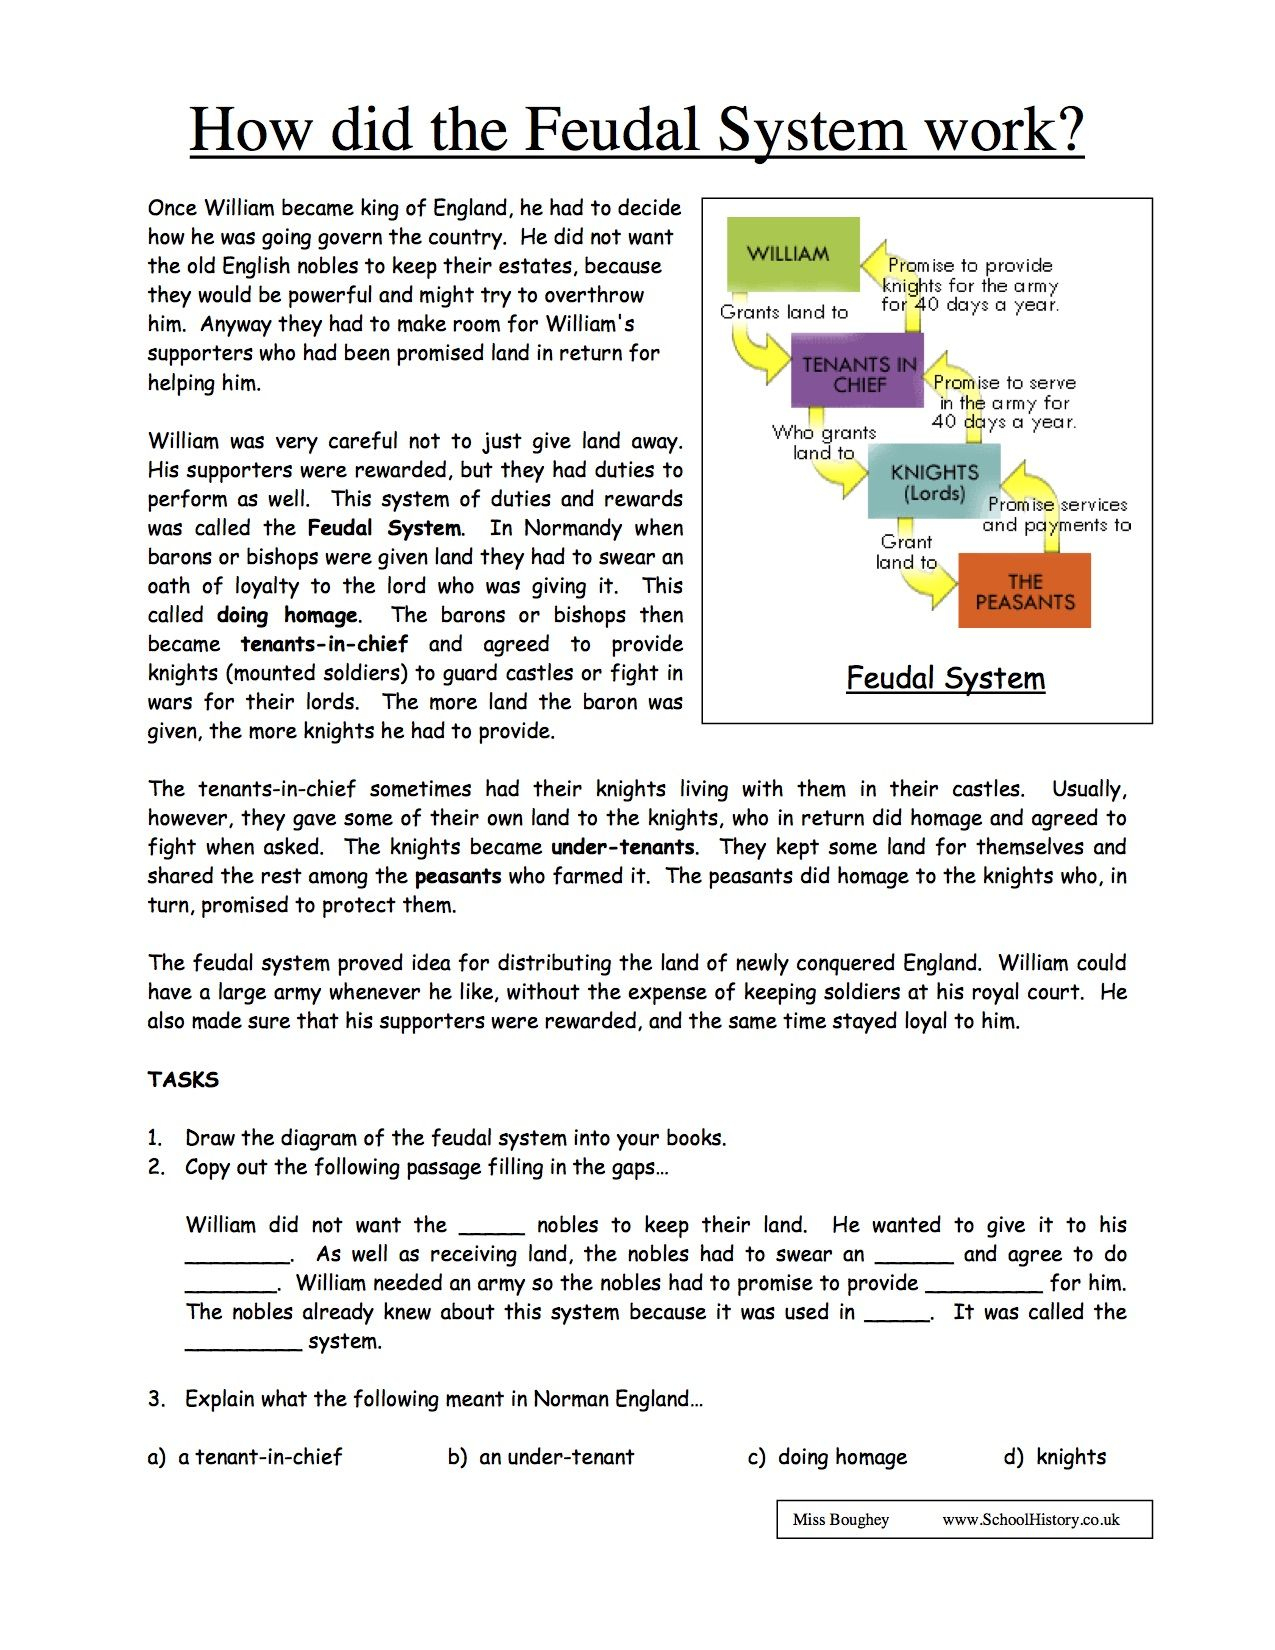 Free History Worksheets | Ks3 & Ks4 Lesson Plans & Resources | Literacy Worksheets Ks3 Printable